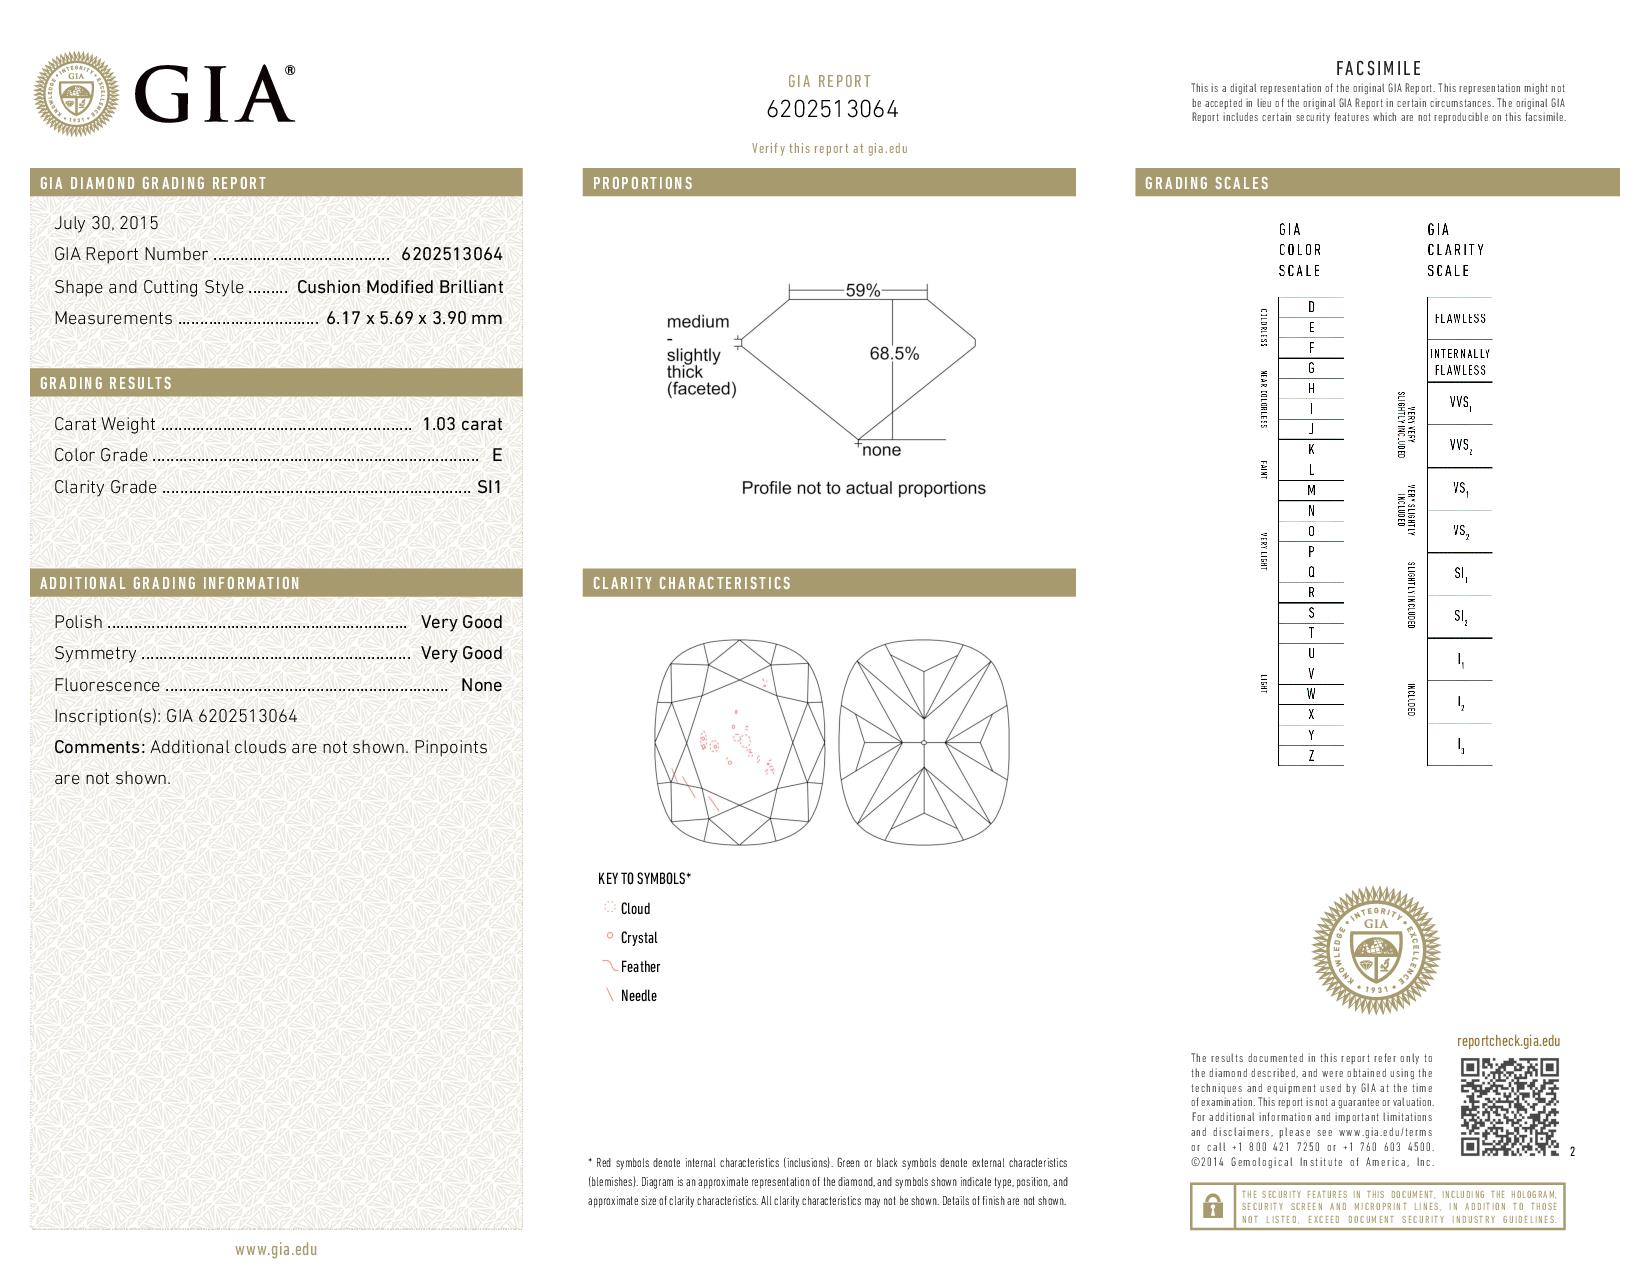 This is a 1.03 carat cushion shape, E color, SI1 clarity natural diamond accompanied by a GIA grading report.